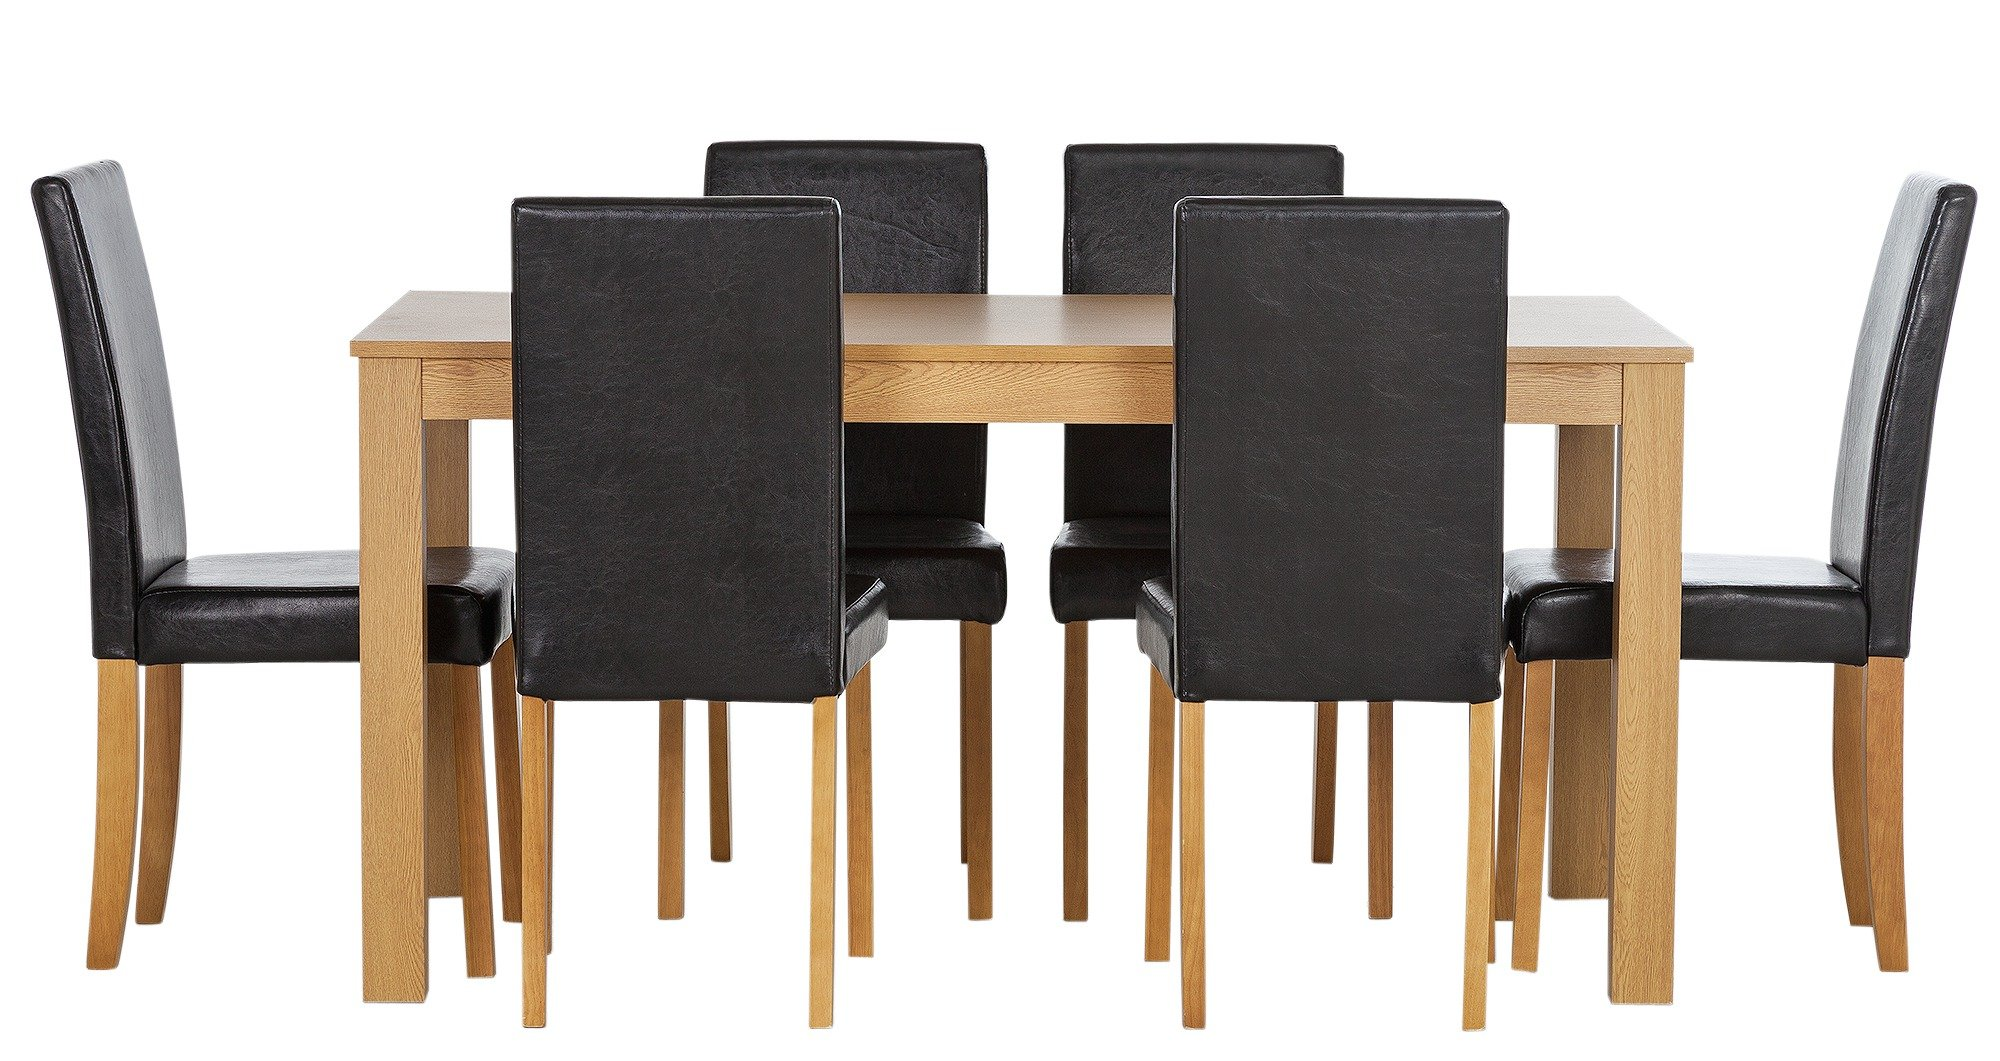 Buy HOME New Elmdon Oak Stain Dining Table and 6 Chairs  : 4817165RZ001AWebampw570amph513 from www.argos.co.uk size 570 x 513 jpeg 23kB